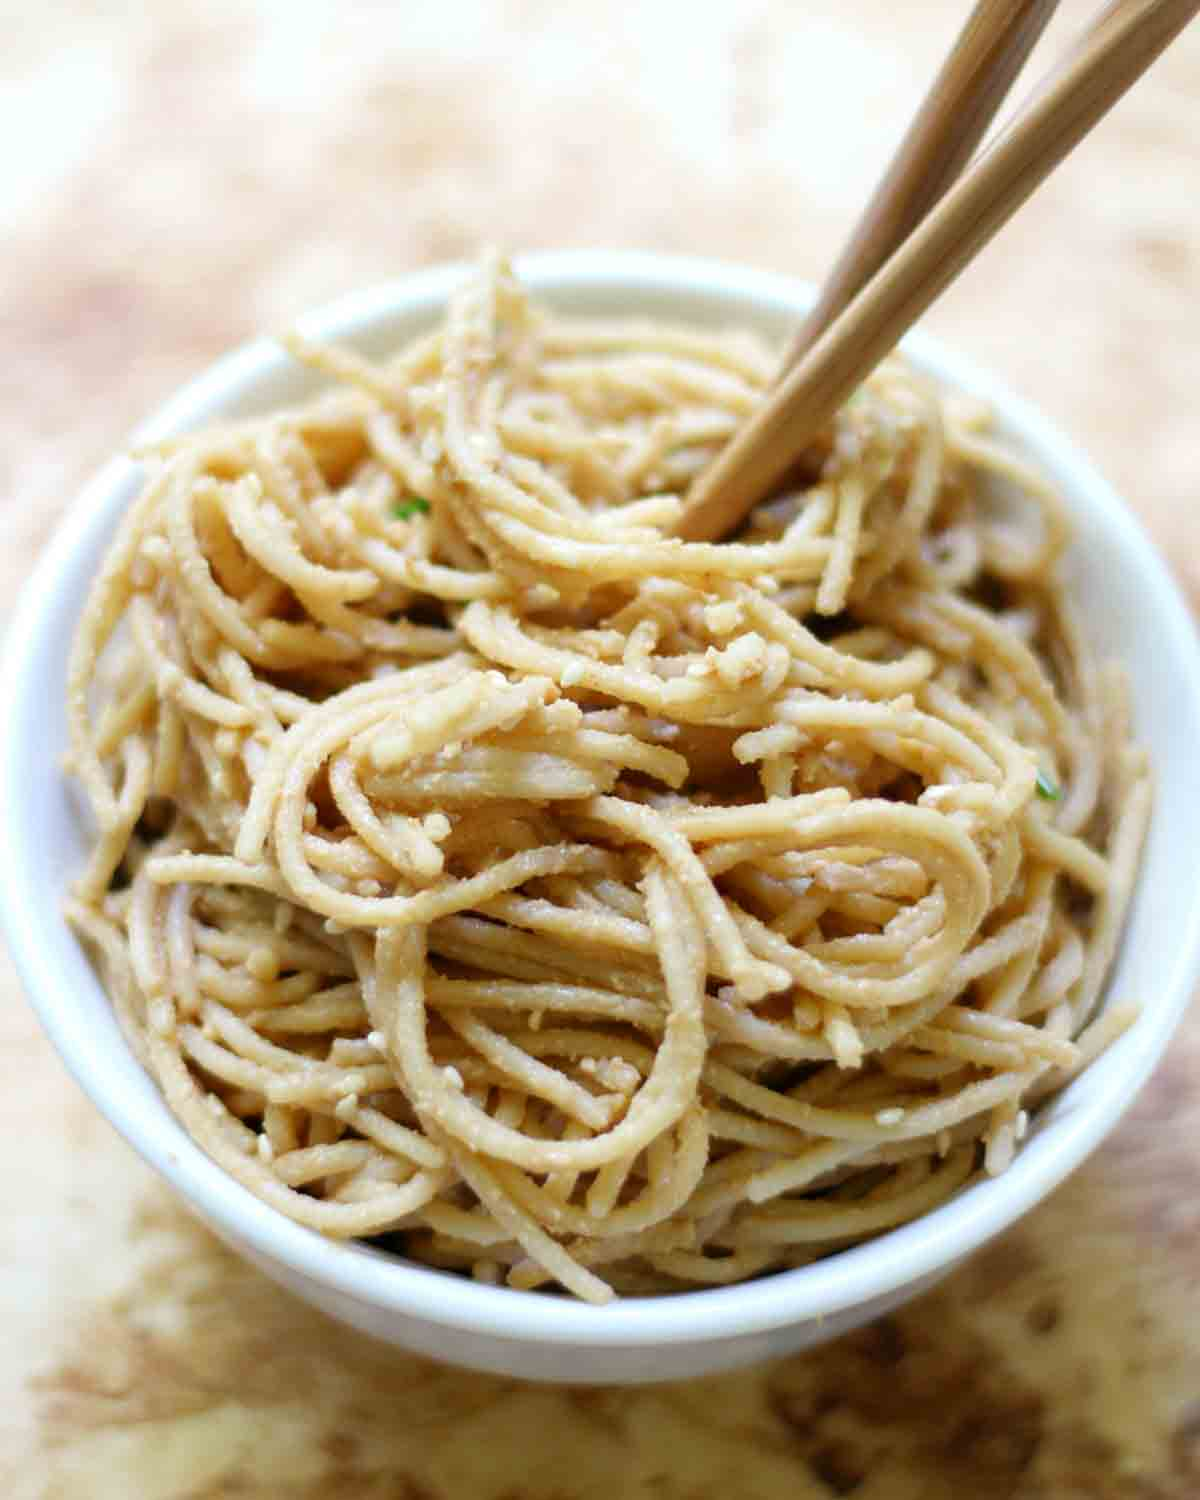 Sesame noodles in a white bowl with a pair of chopsticks.